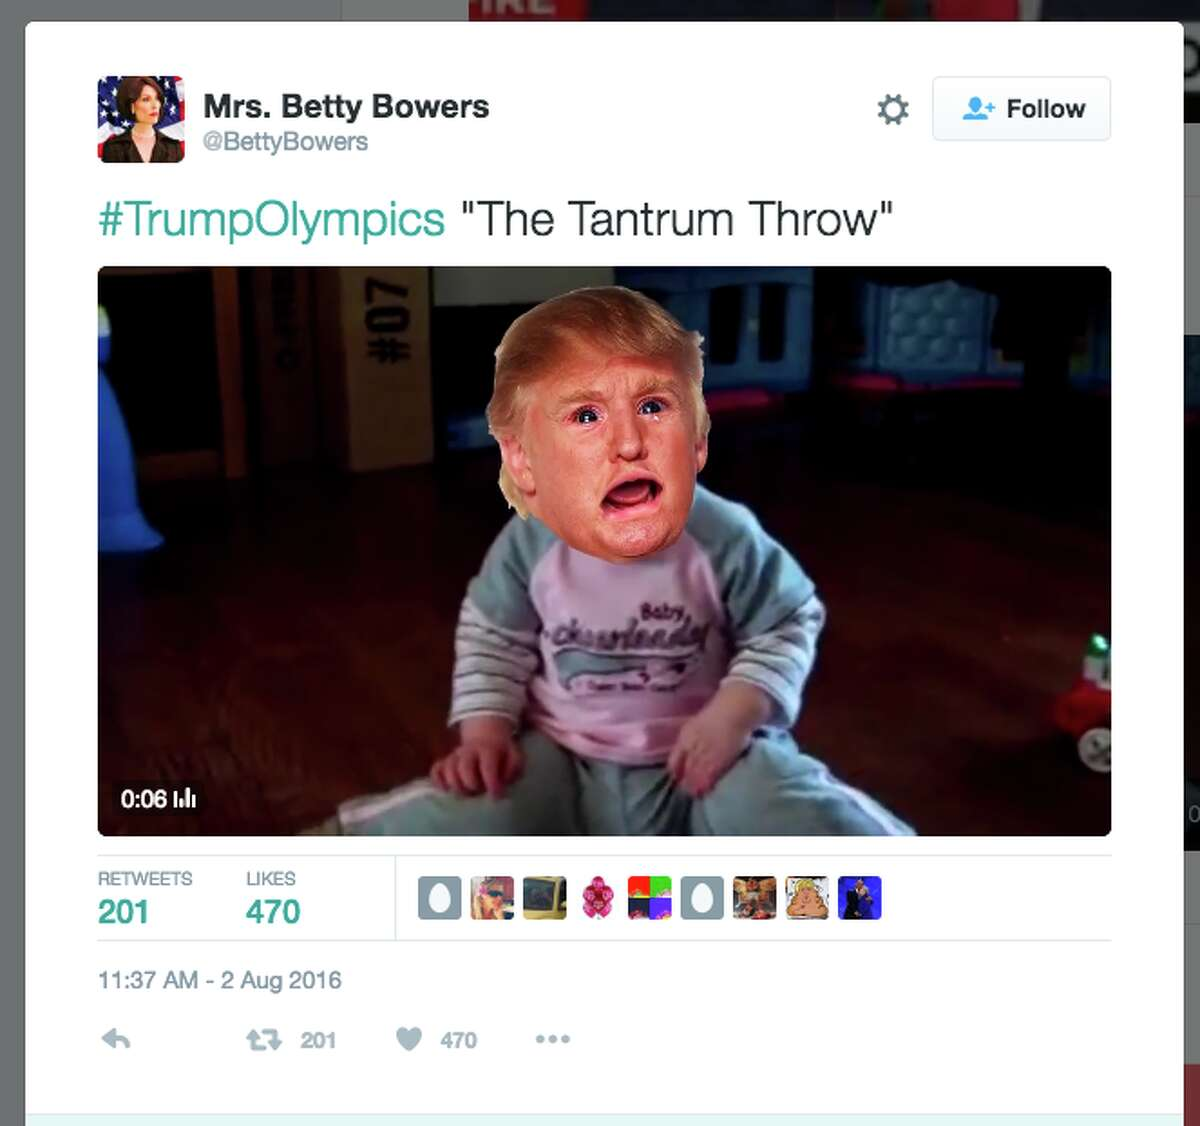 The hashtag #TrumpOlympics imagines Olympic sports Donald Trump would excel at. Here's a selection of tweets.